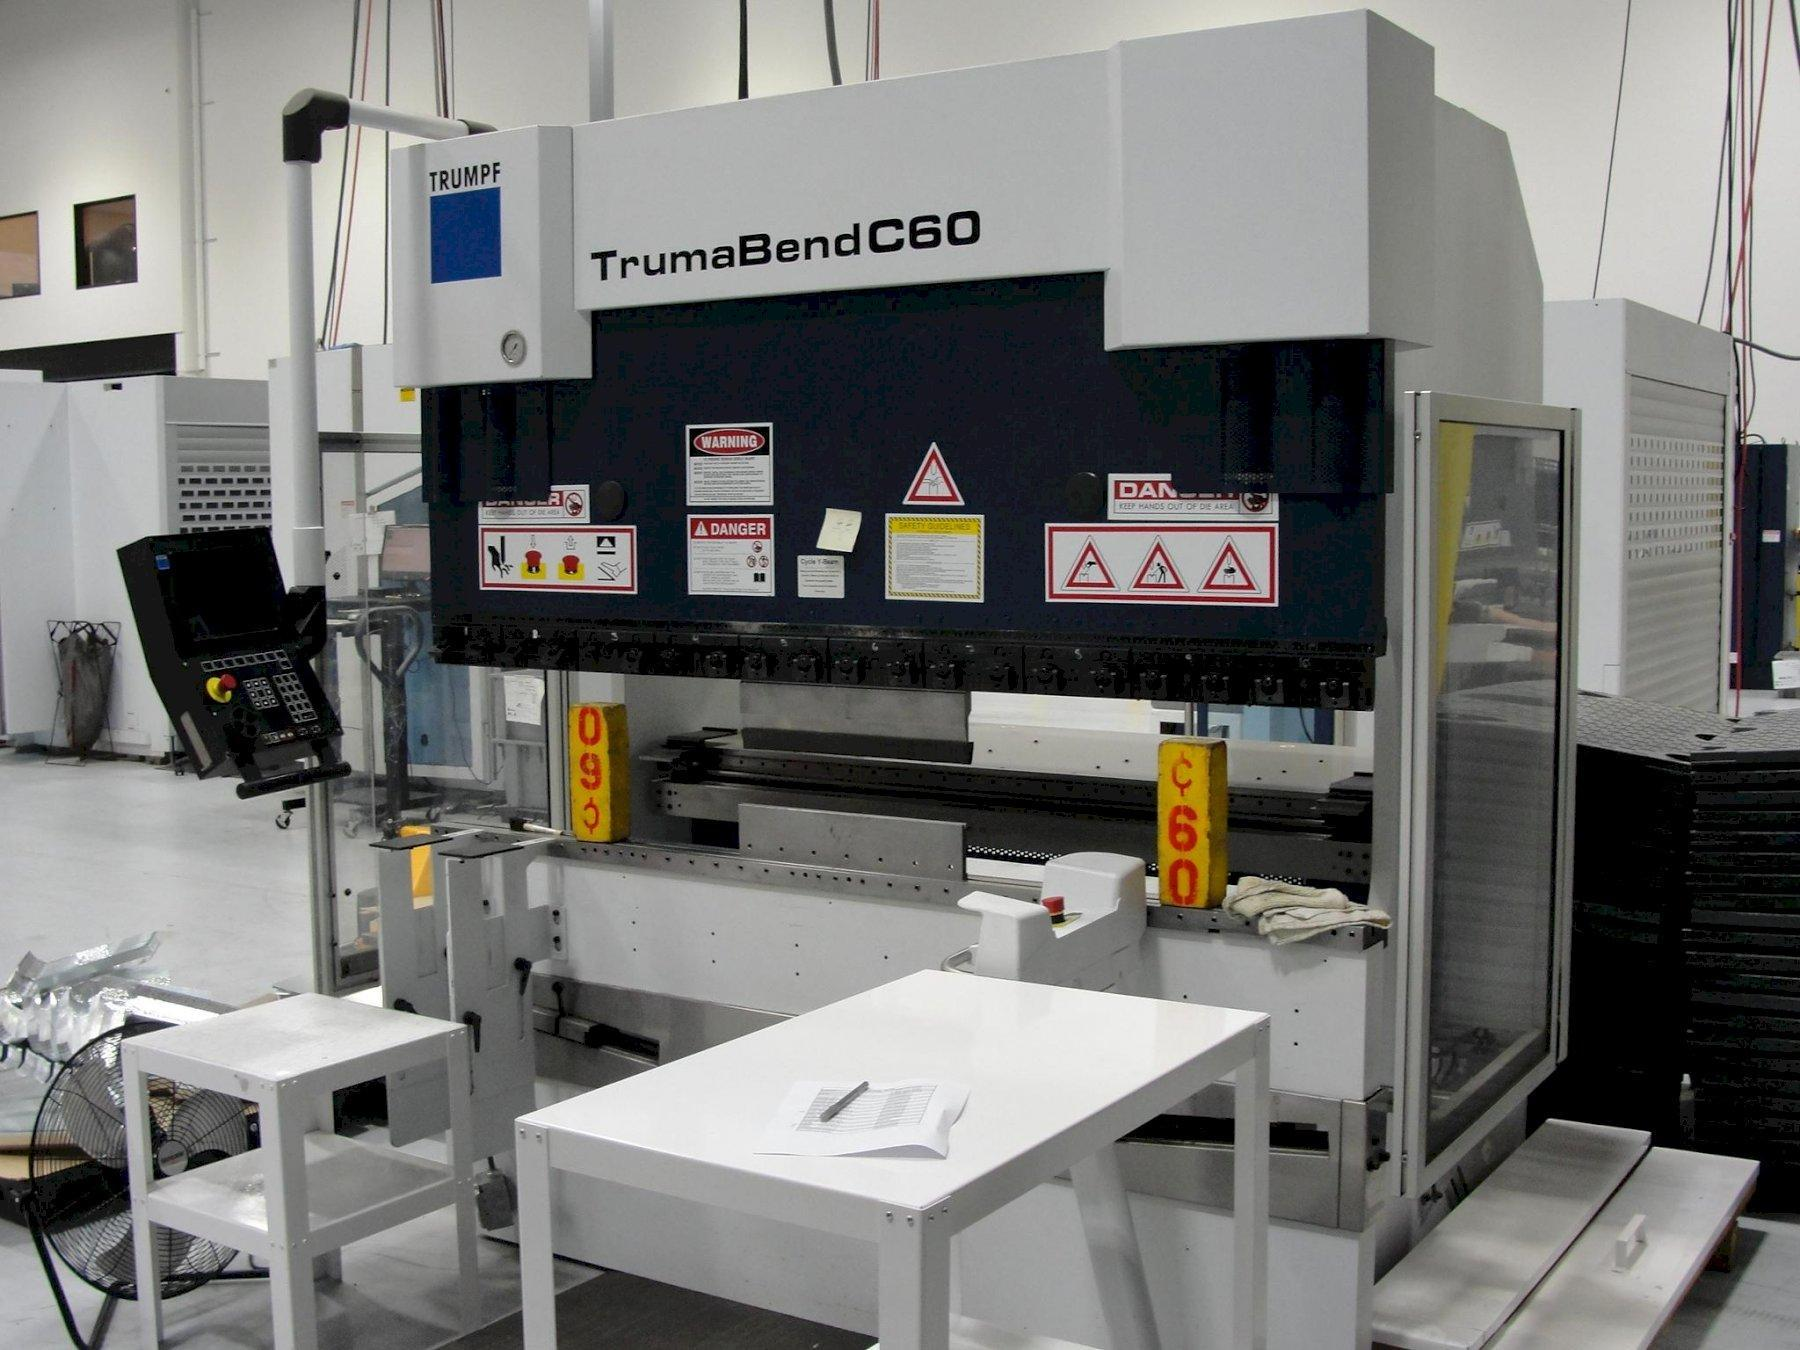 66 TON TRUMPF TRUMABEND C60 6-AXIS CNC PRESS BRAKE